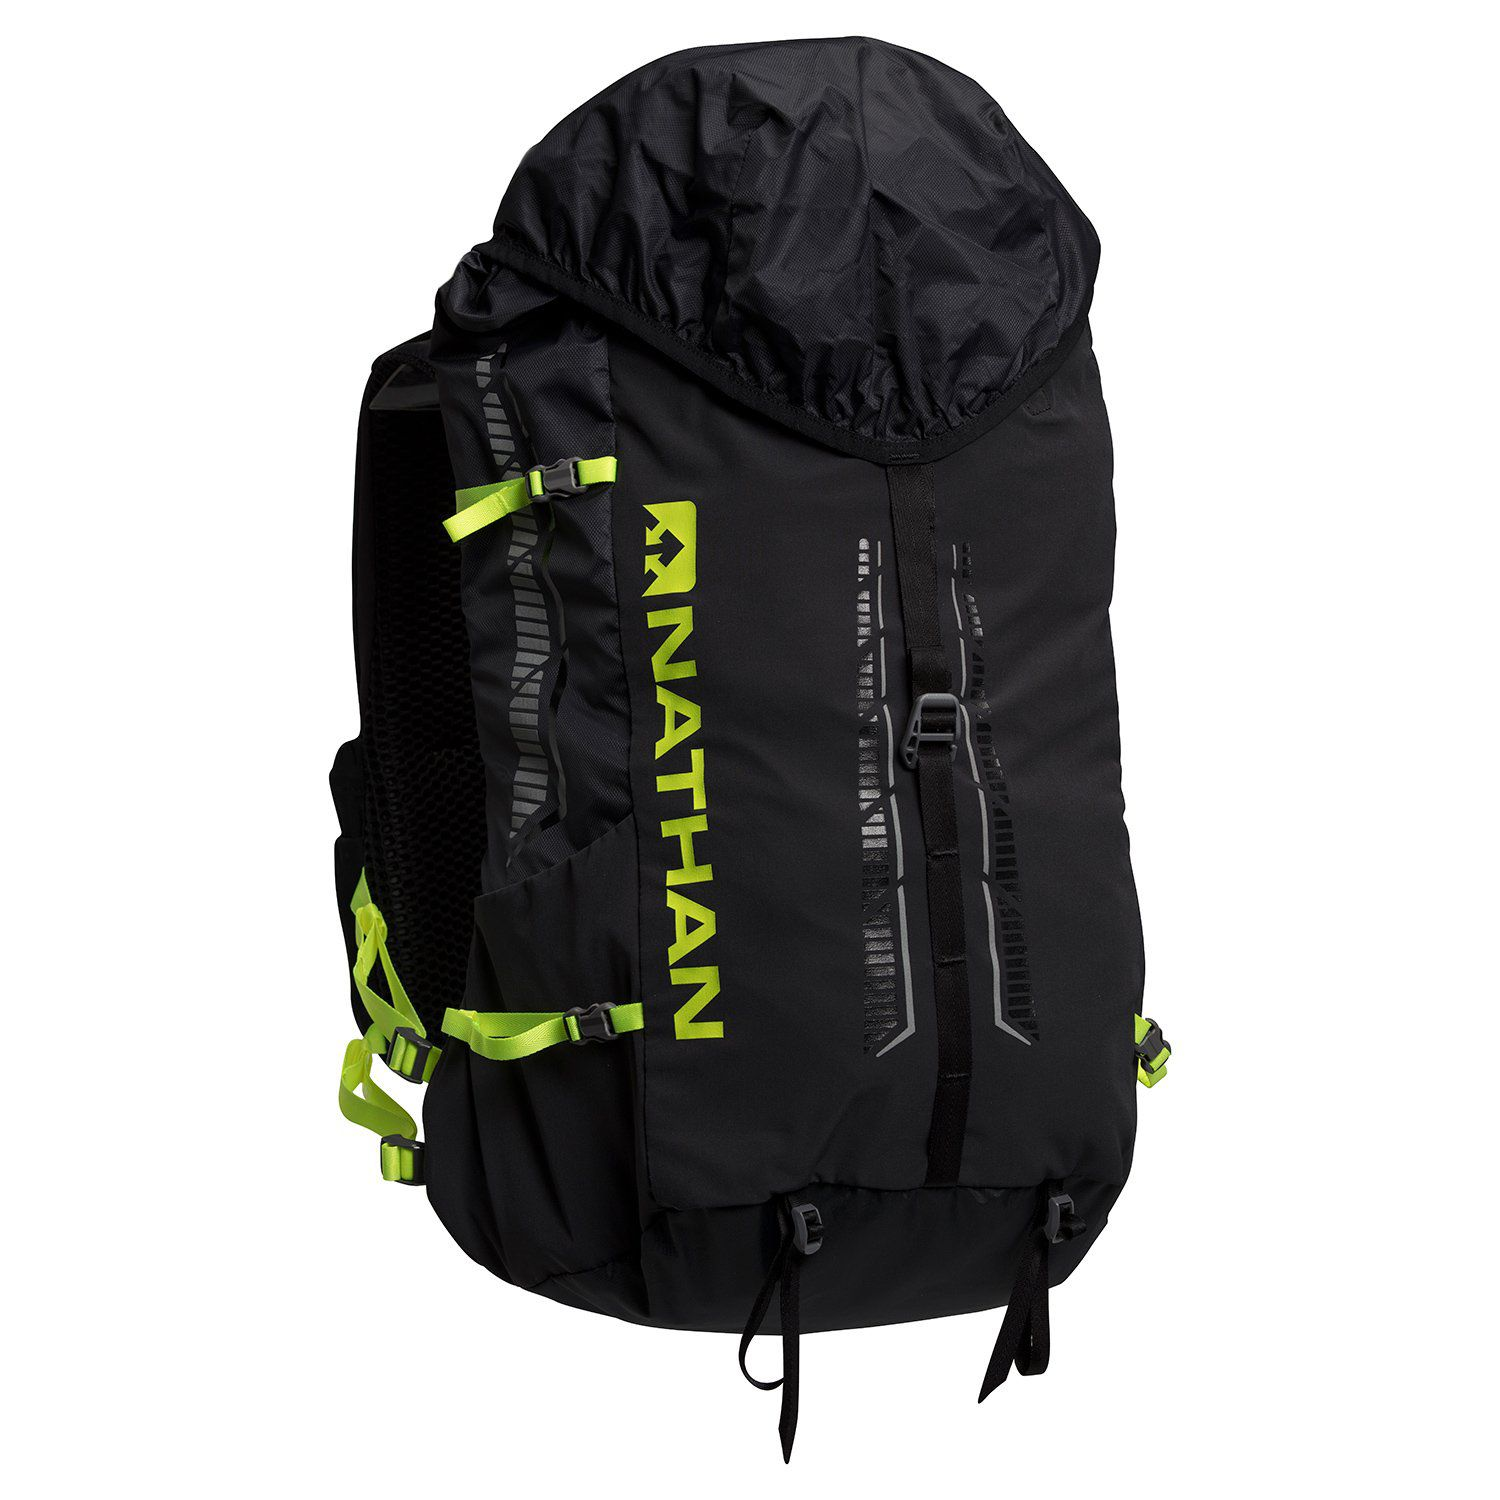 huge discount e7b23 5a5b7 15 Running Backpacks That Let You Run Commute to Work With All Your Stuff